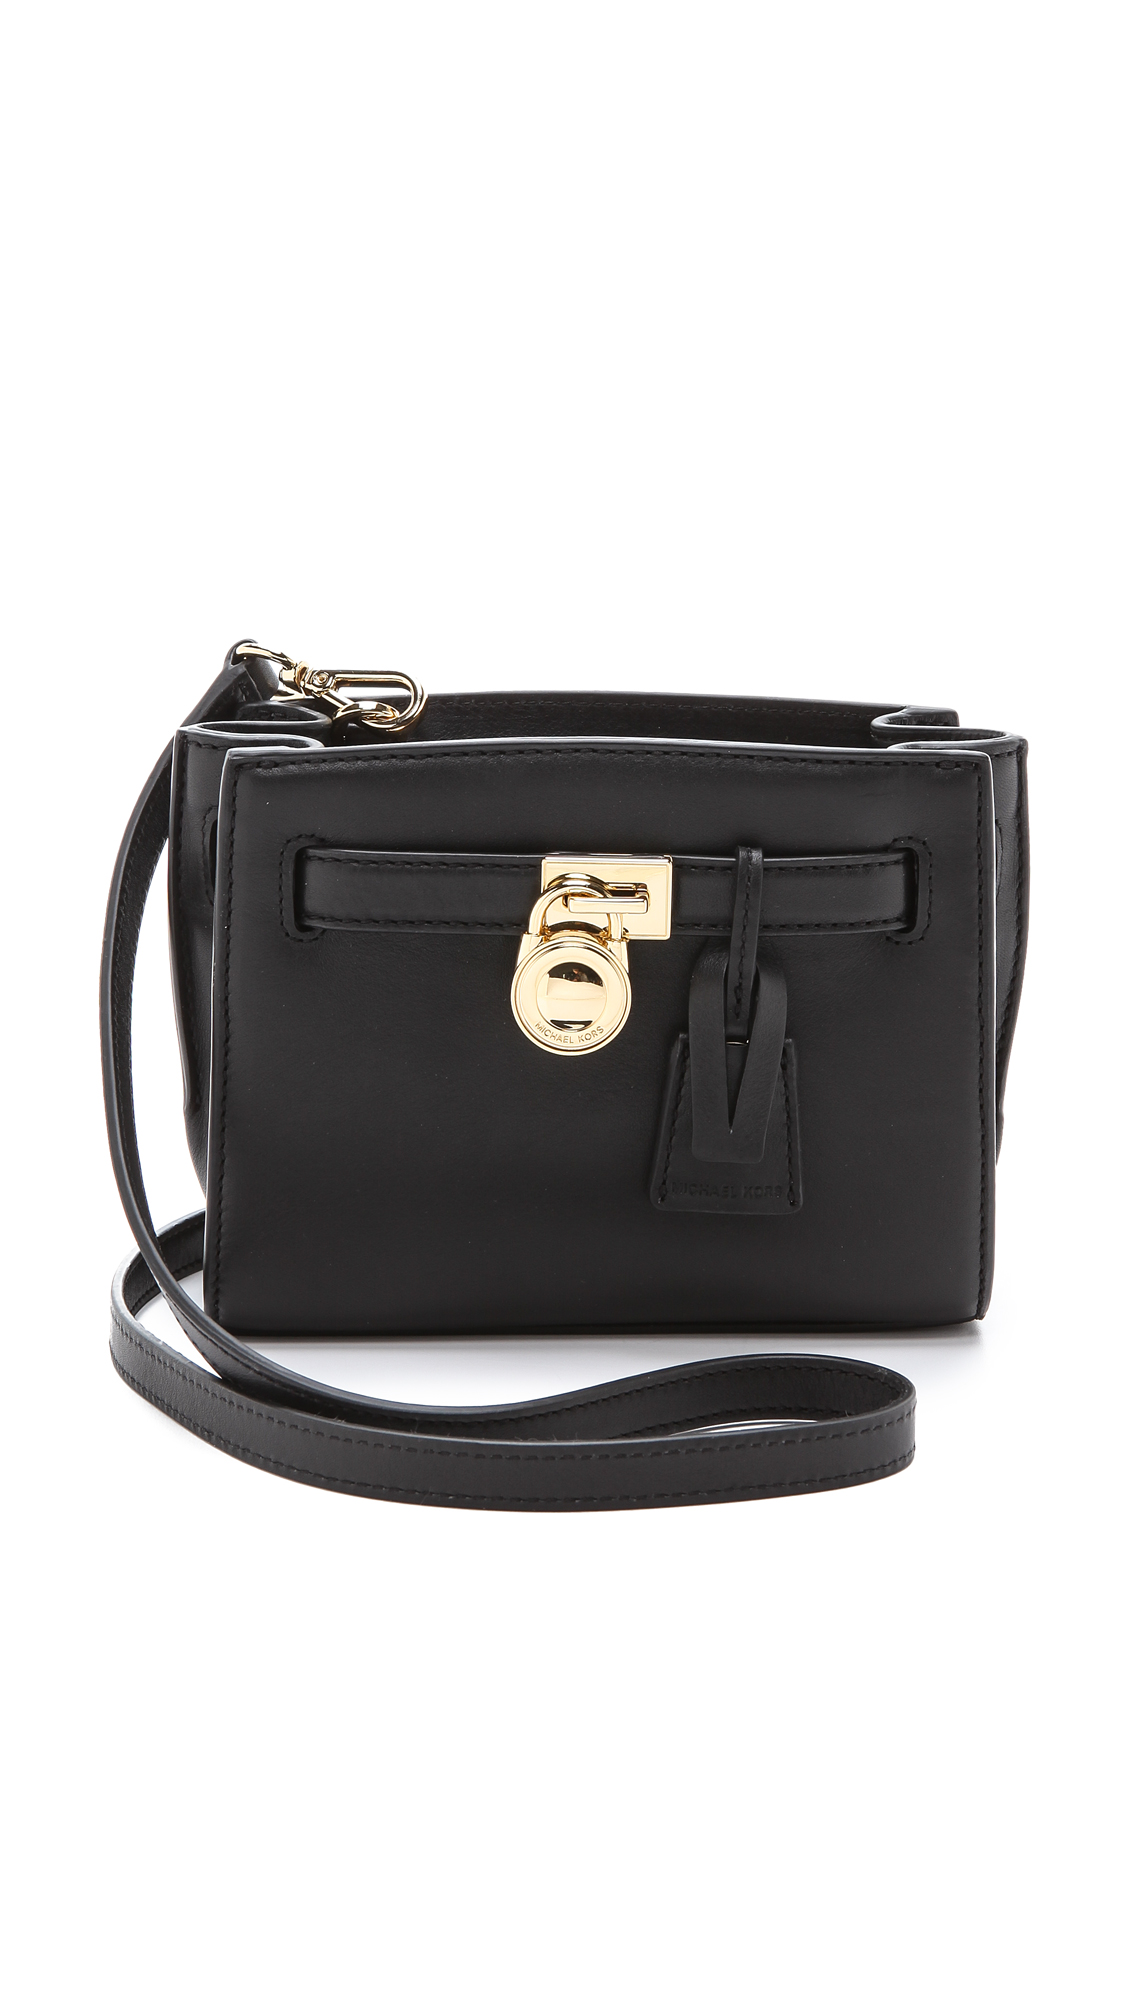 Buy michael kors Hamilton Small Messenger Bag (black) 9282061 for ... 613e561572819